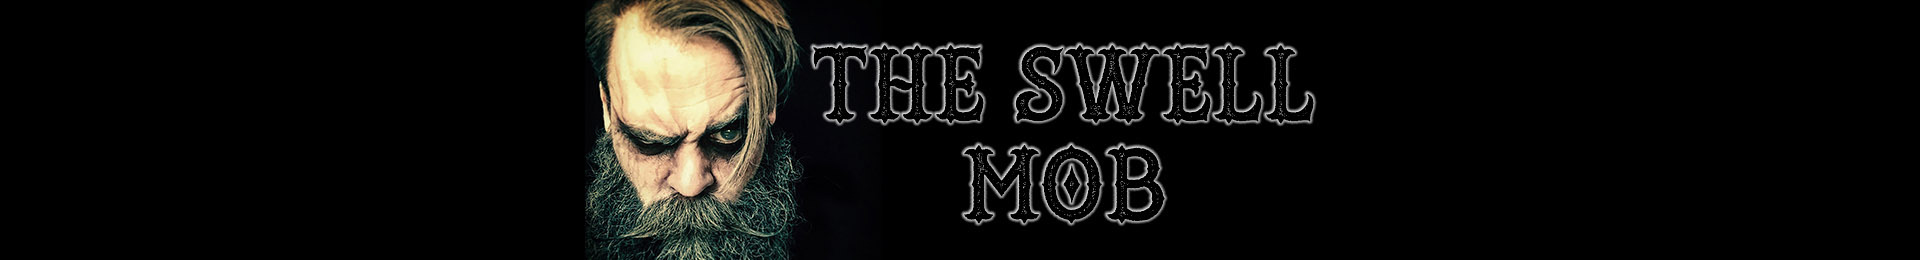 The Swell Mob banner image